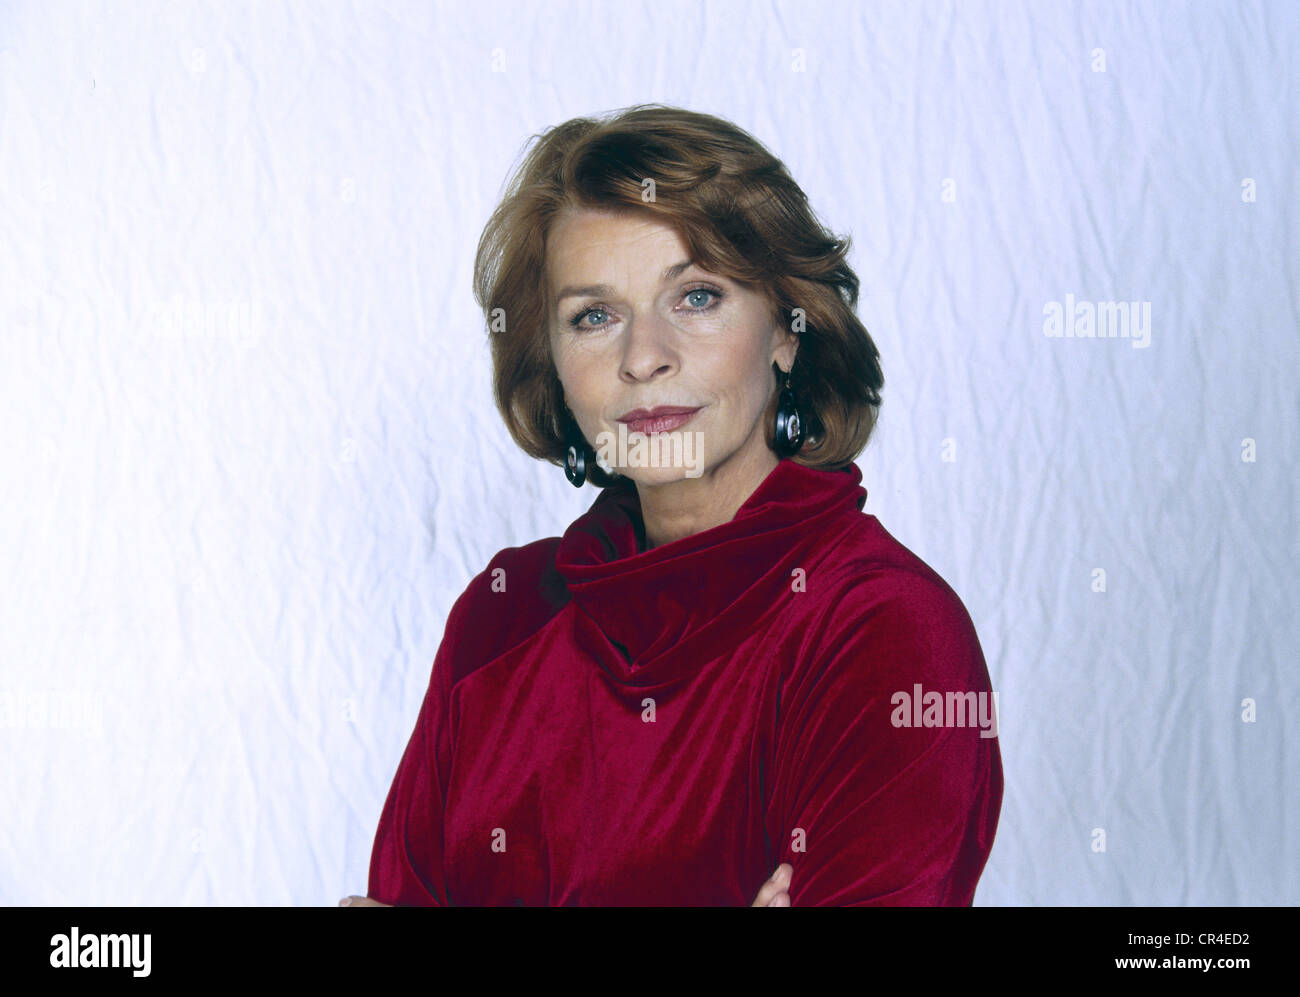 Berger, Senta, * 13.5.1941, Austrian actress, portrait, 1998, Stock Photo